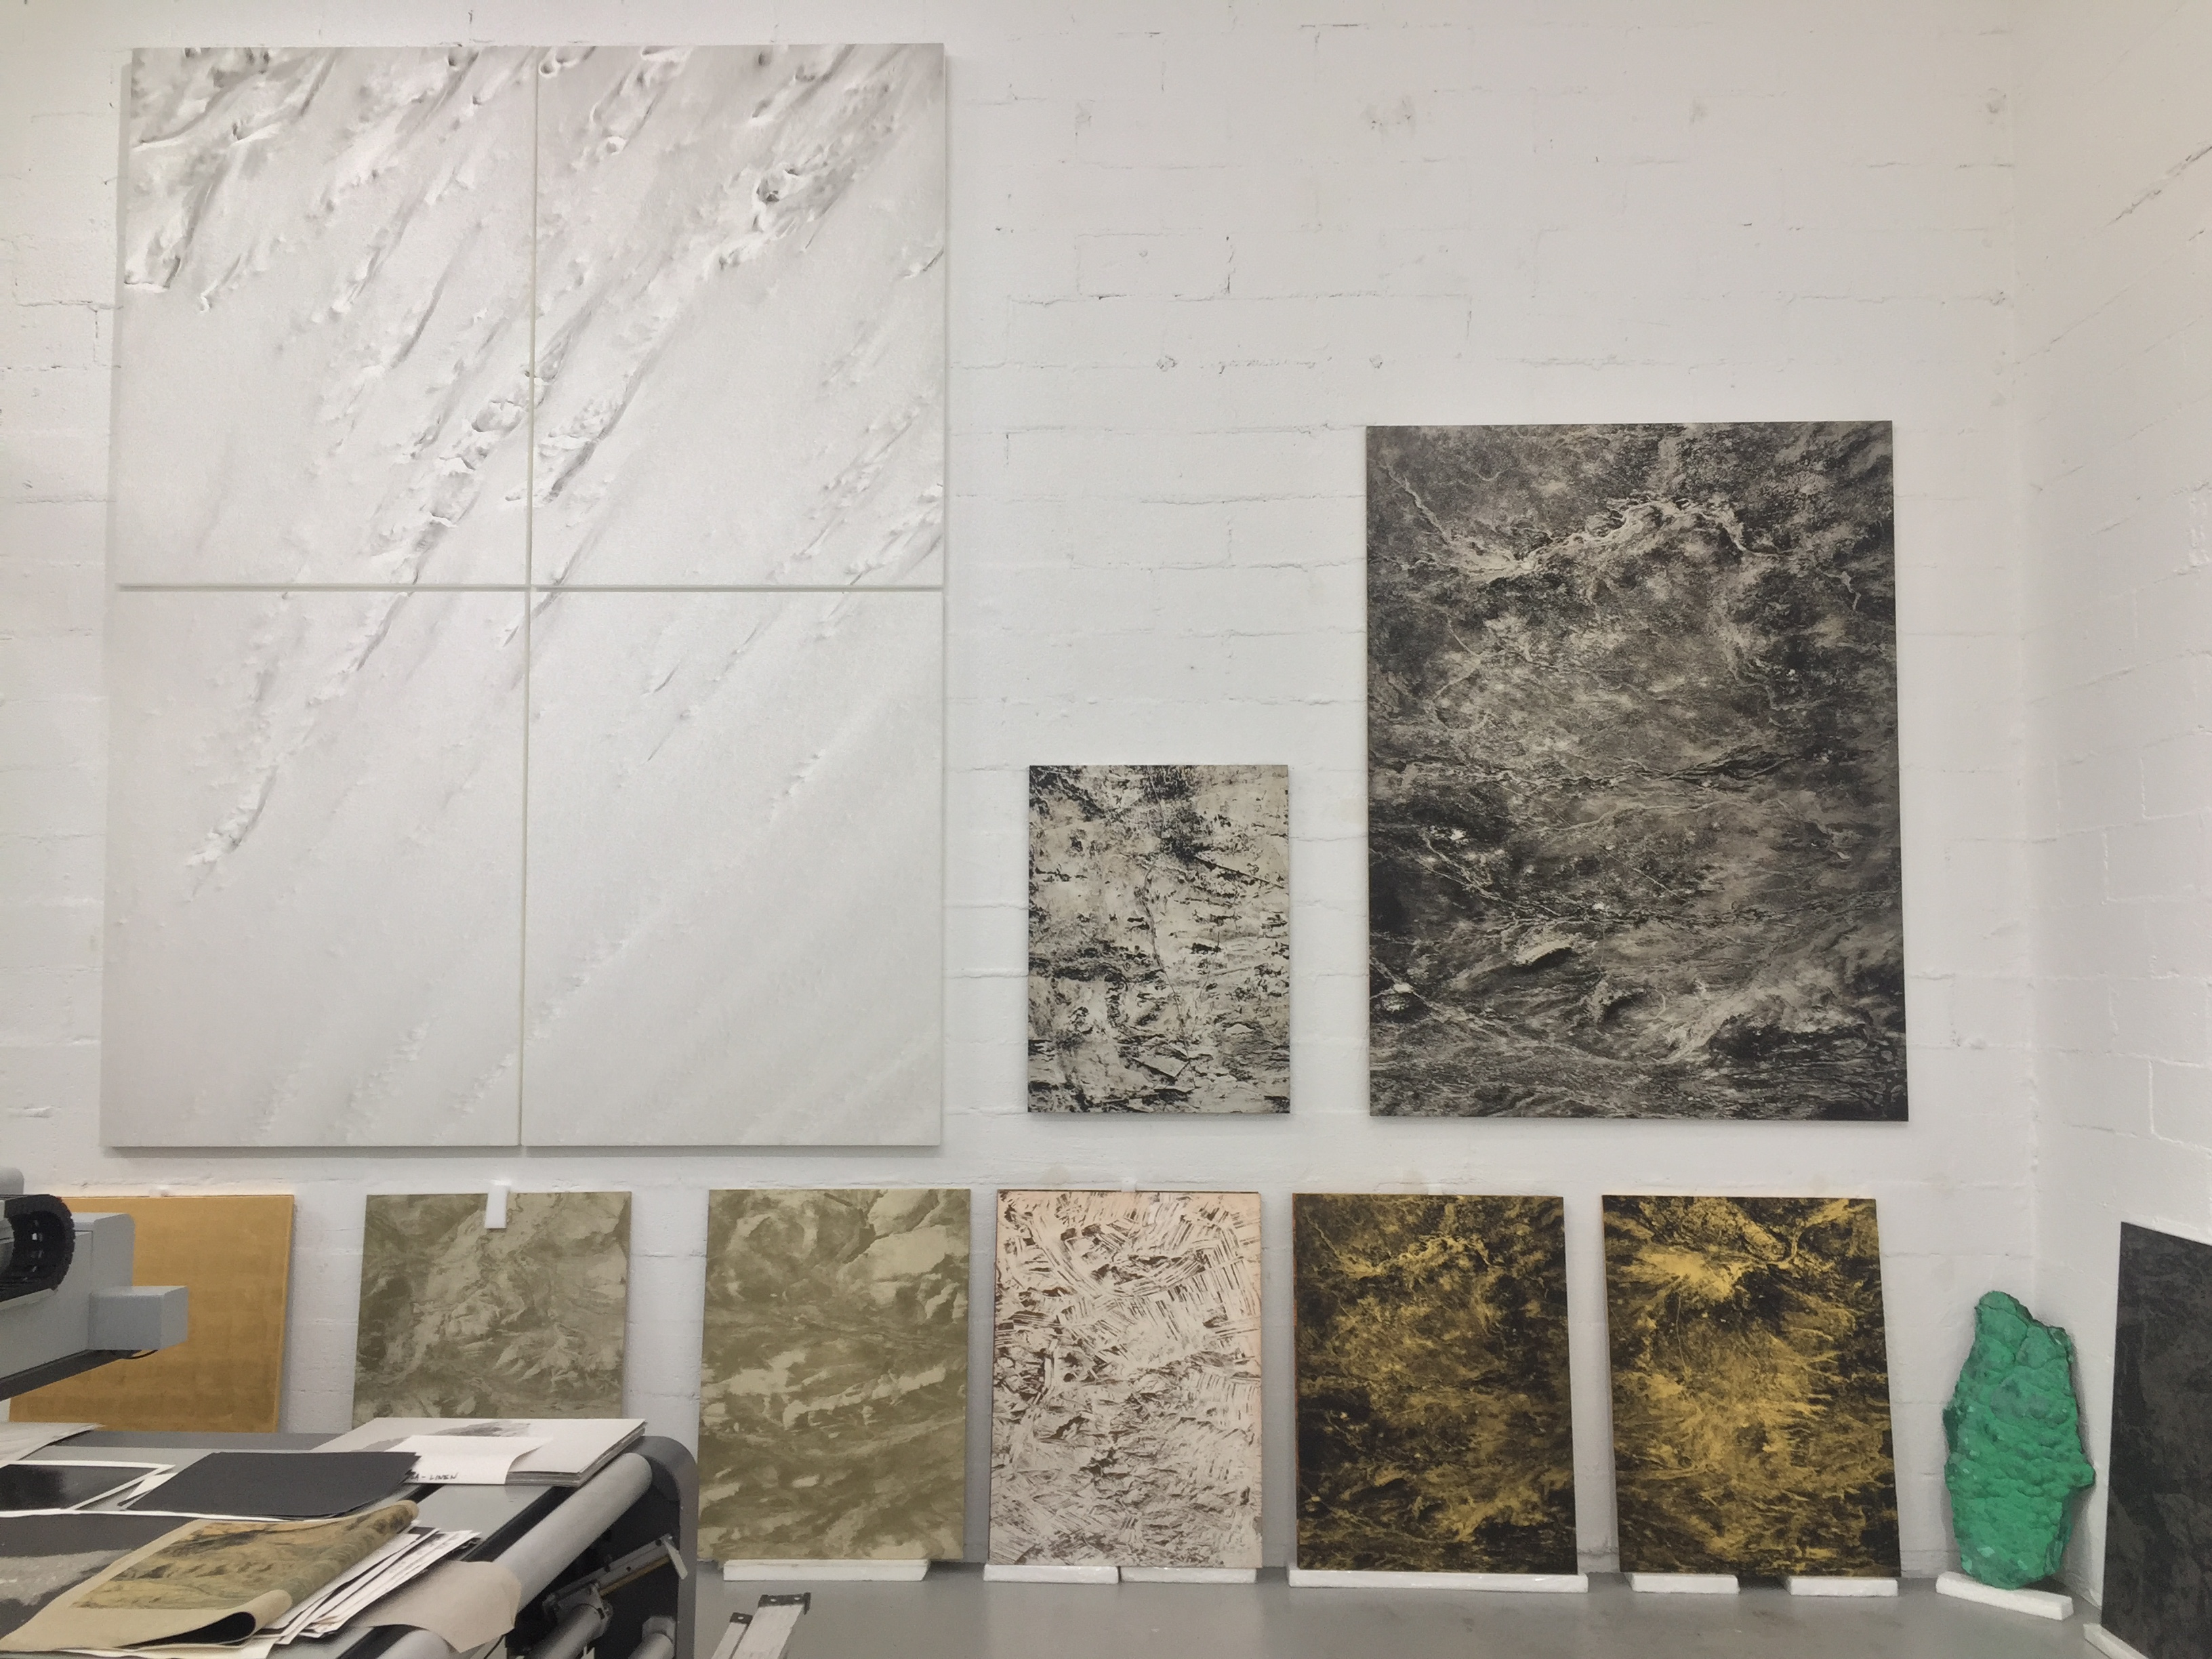 Other works in Guariglia's studio. Credit: Chau Tu